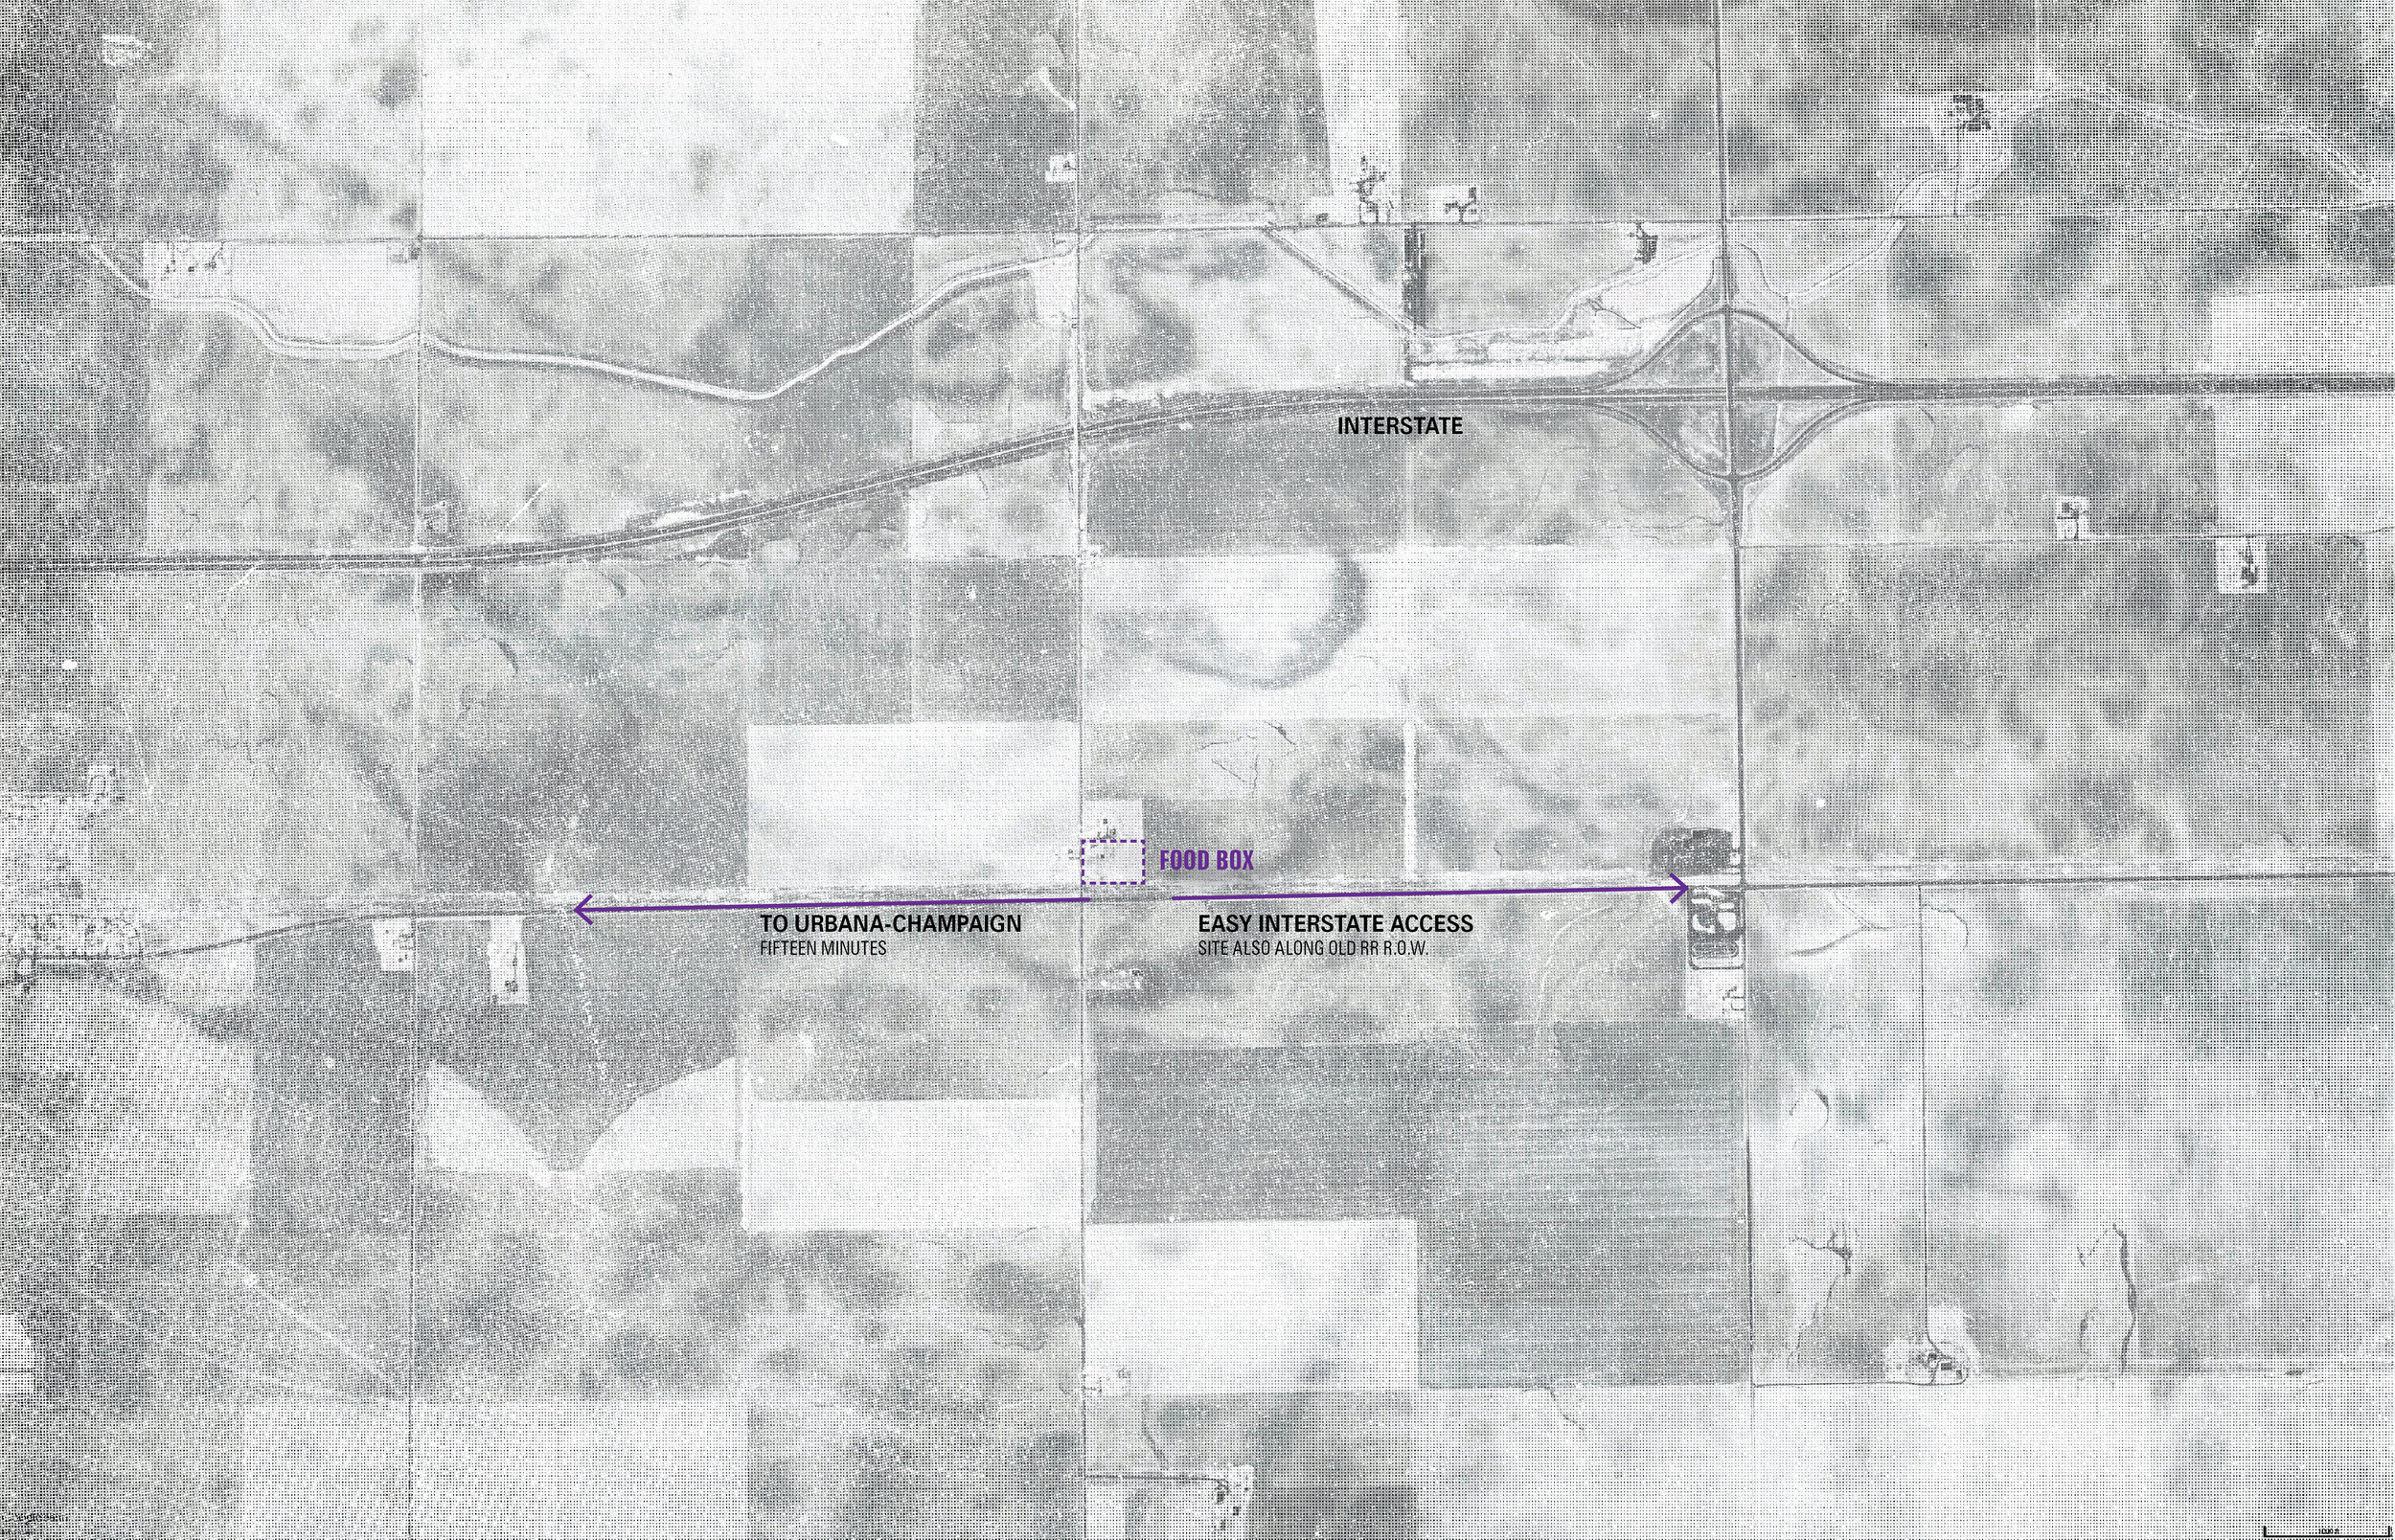 Another map view, showing the local context of the silo project. (click image for larger view)